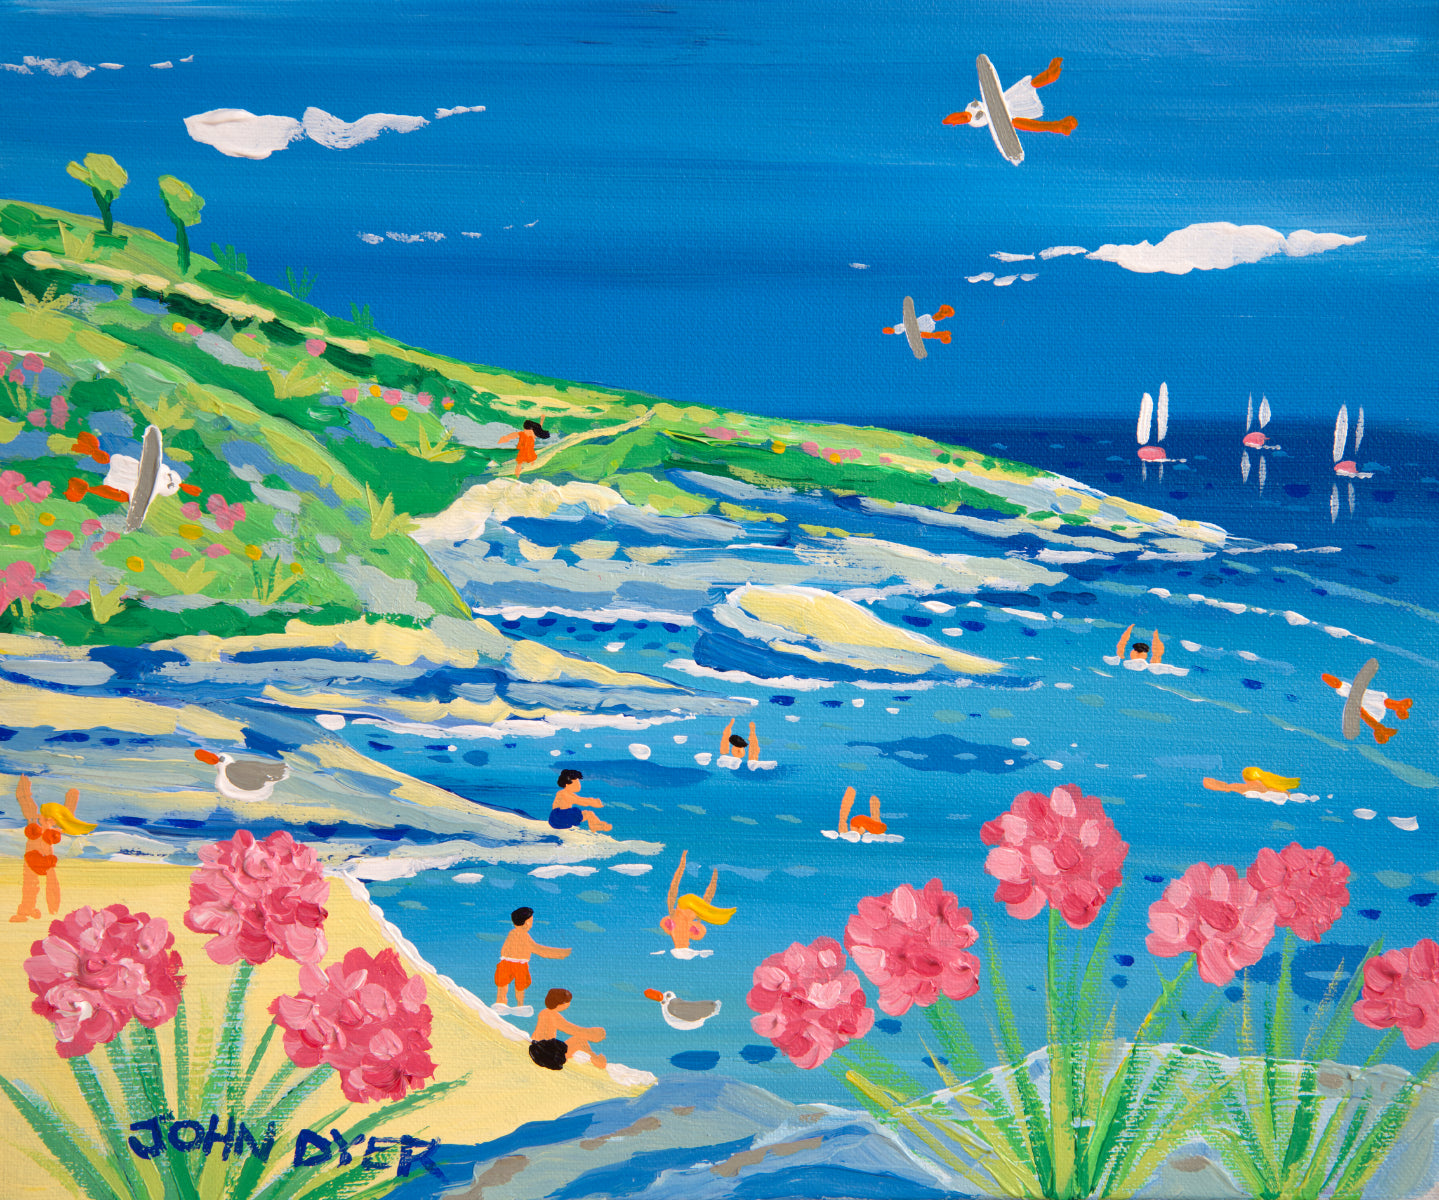 John Dyer Painting. Splashing about in Prussia Cove